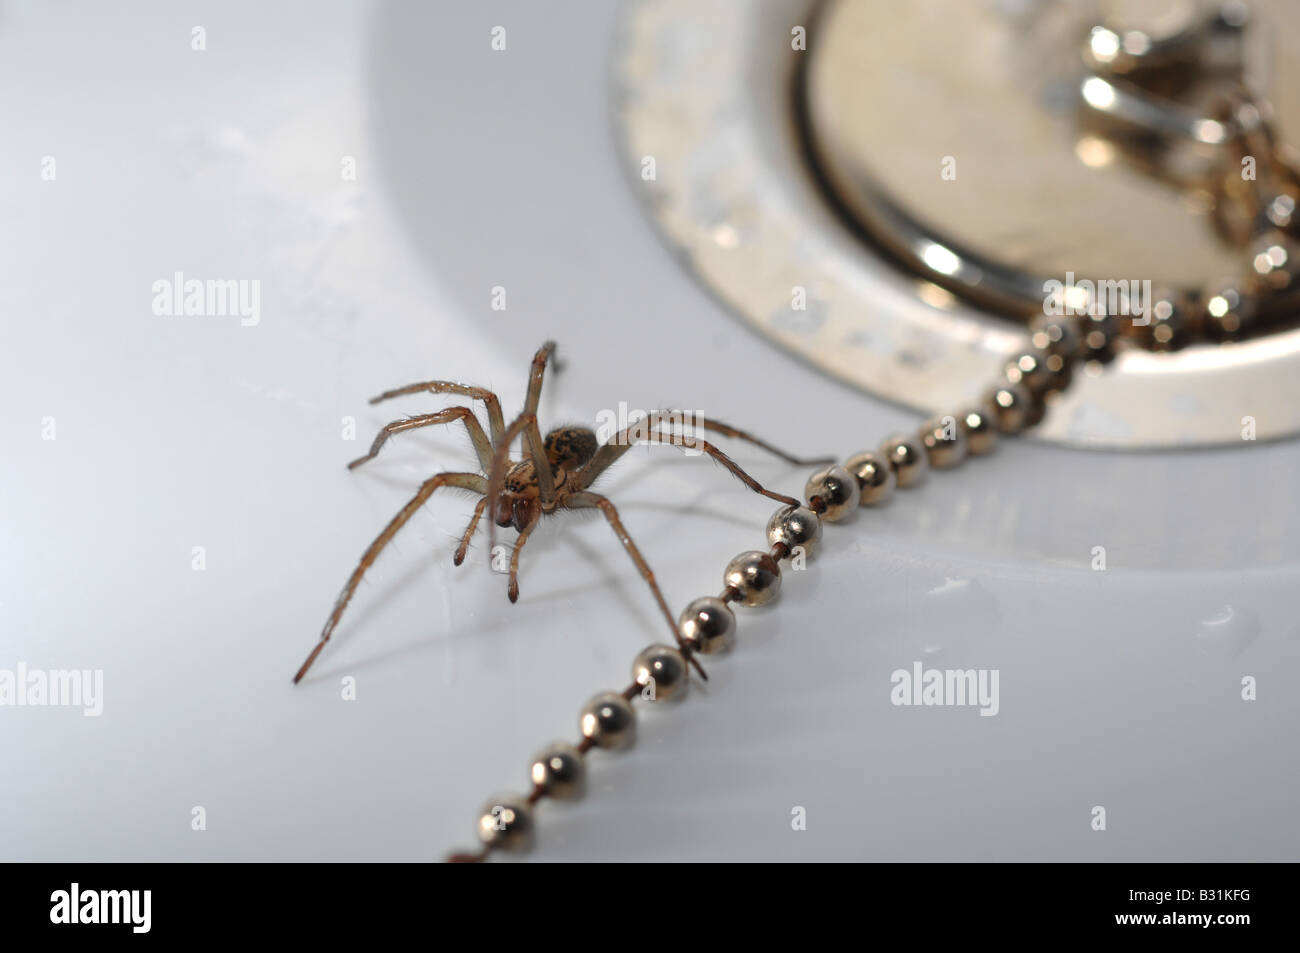 Spider in the bath, 'house spider' by plug in bath - Stock Image